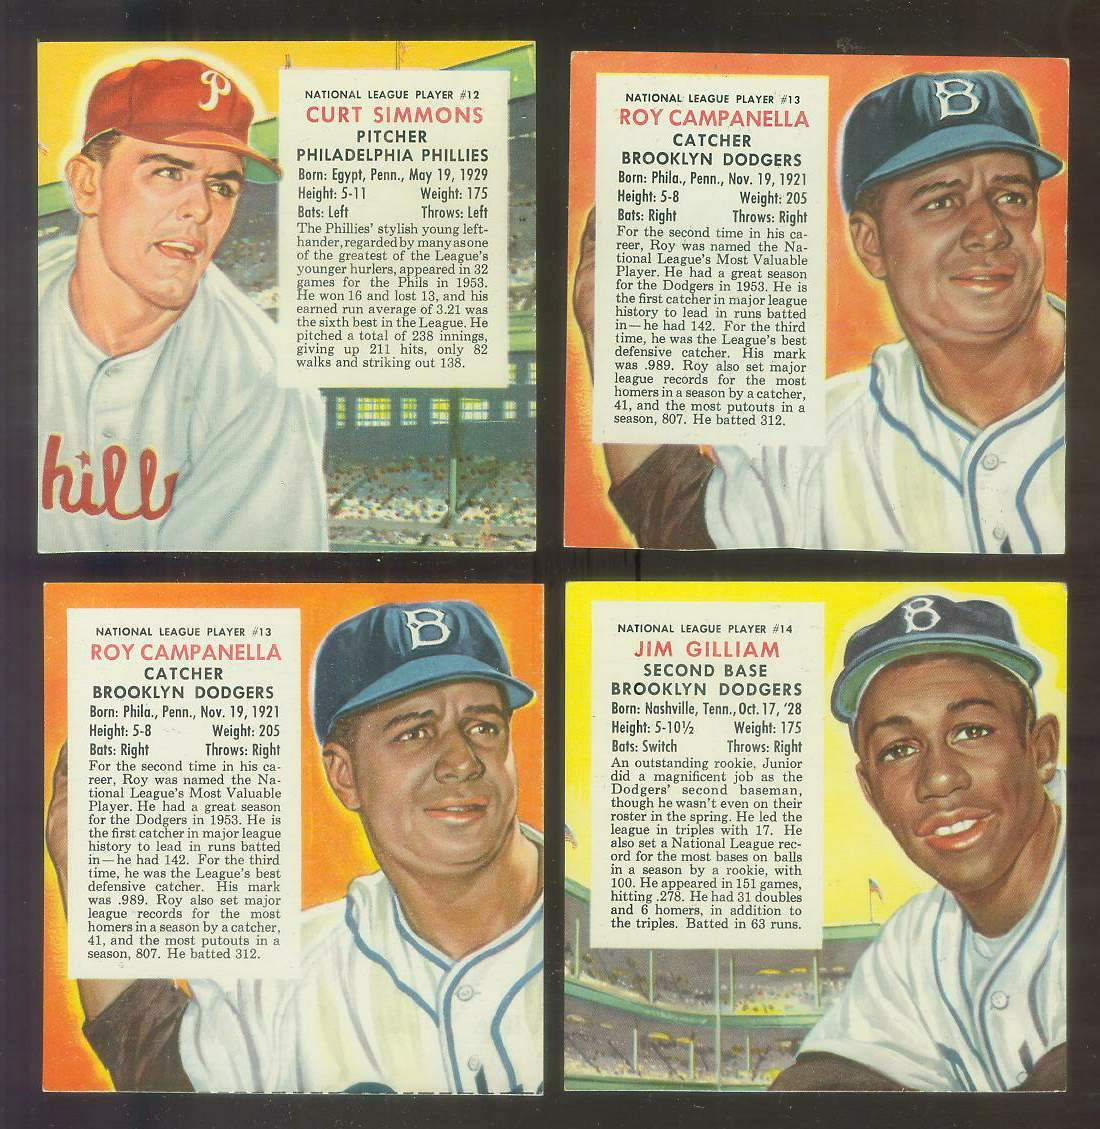 1954 Red Man #NL14 Jim Gilliam (Dodgers) Baseball cards value